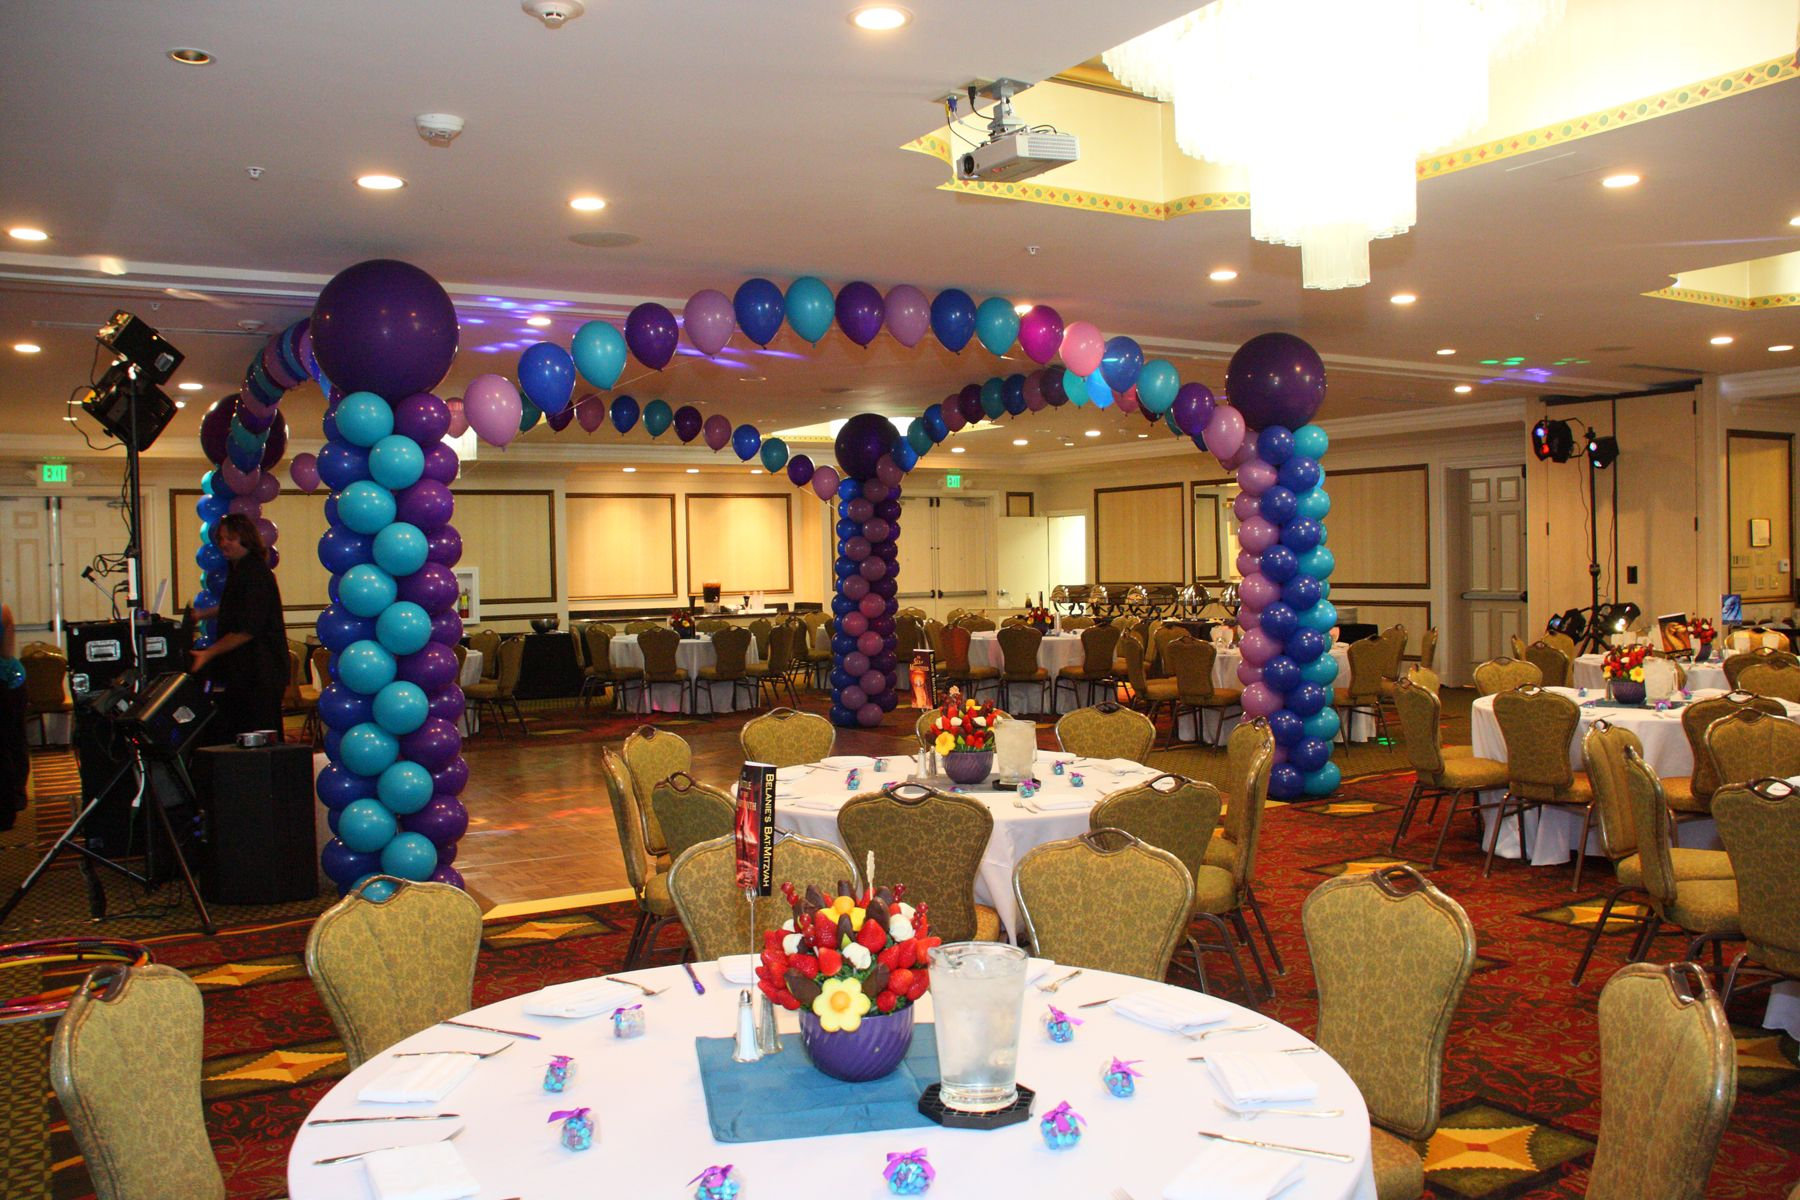 Festive balloon arch surrounding the dance floor at the Hilton ...